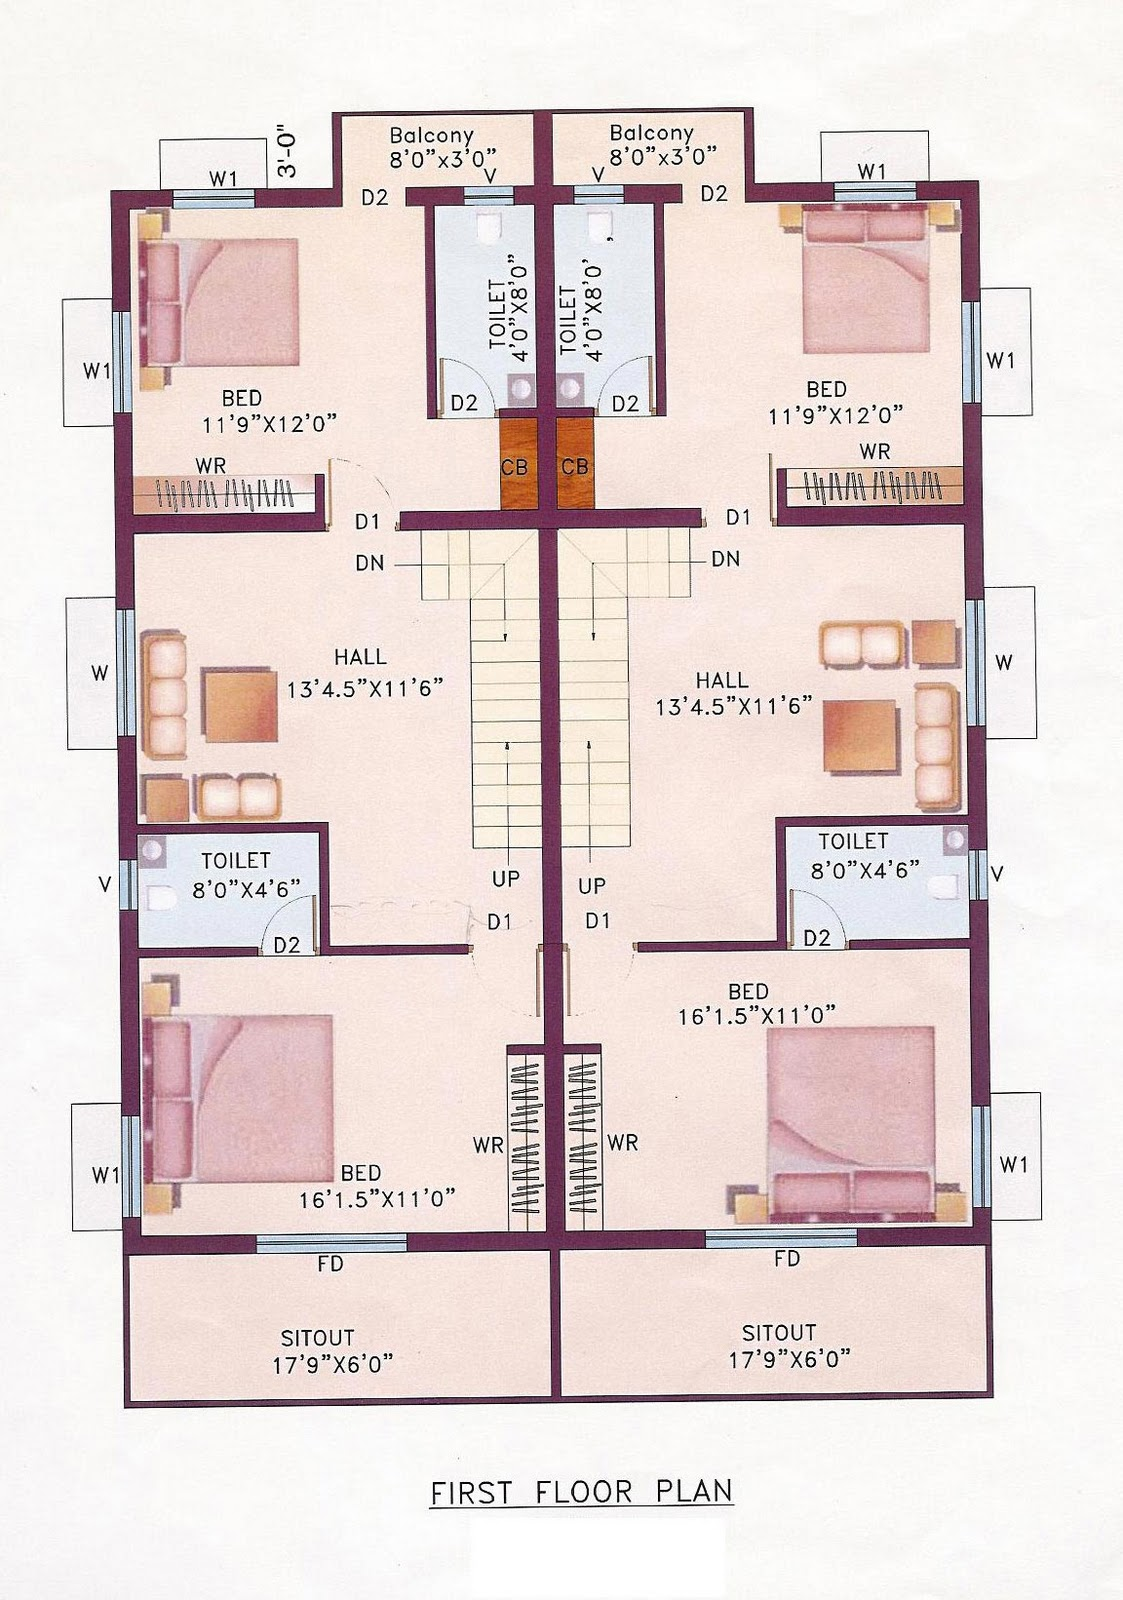 House plans and design house plans india with photos for Indian house designs and floor plans